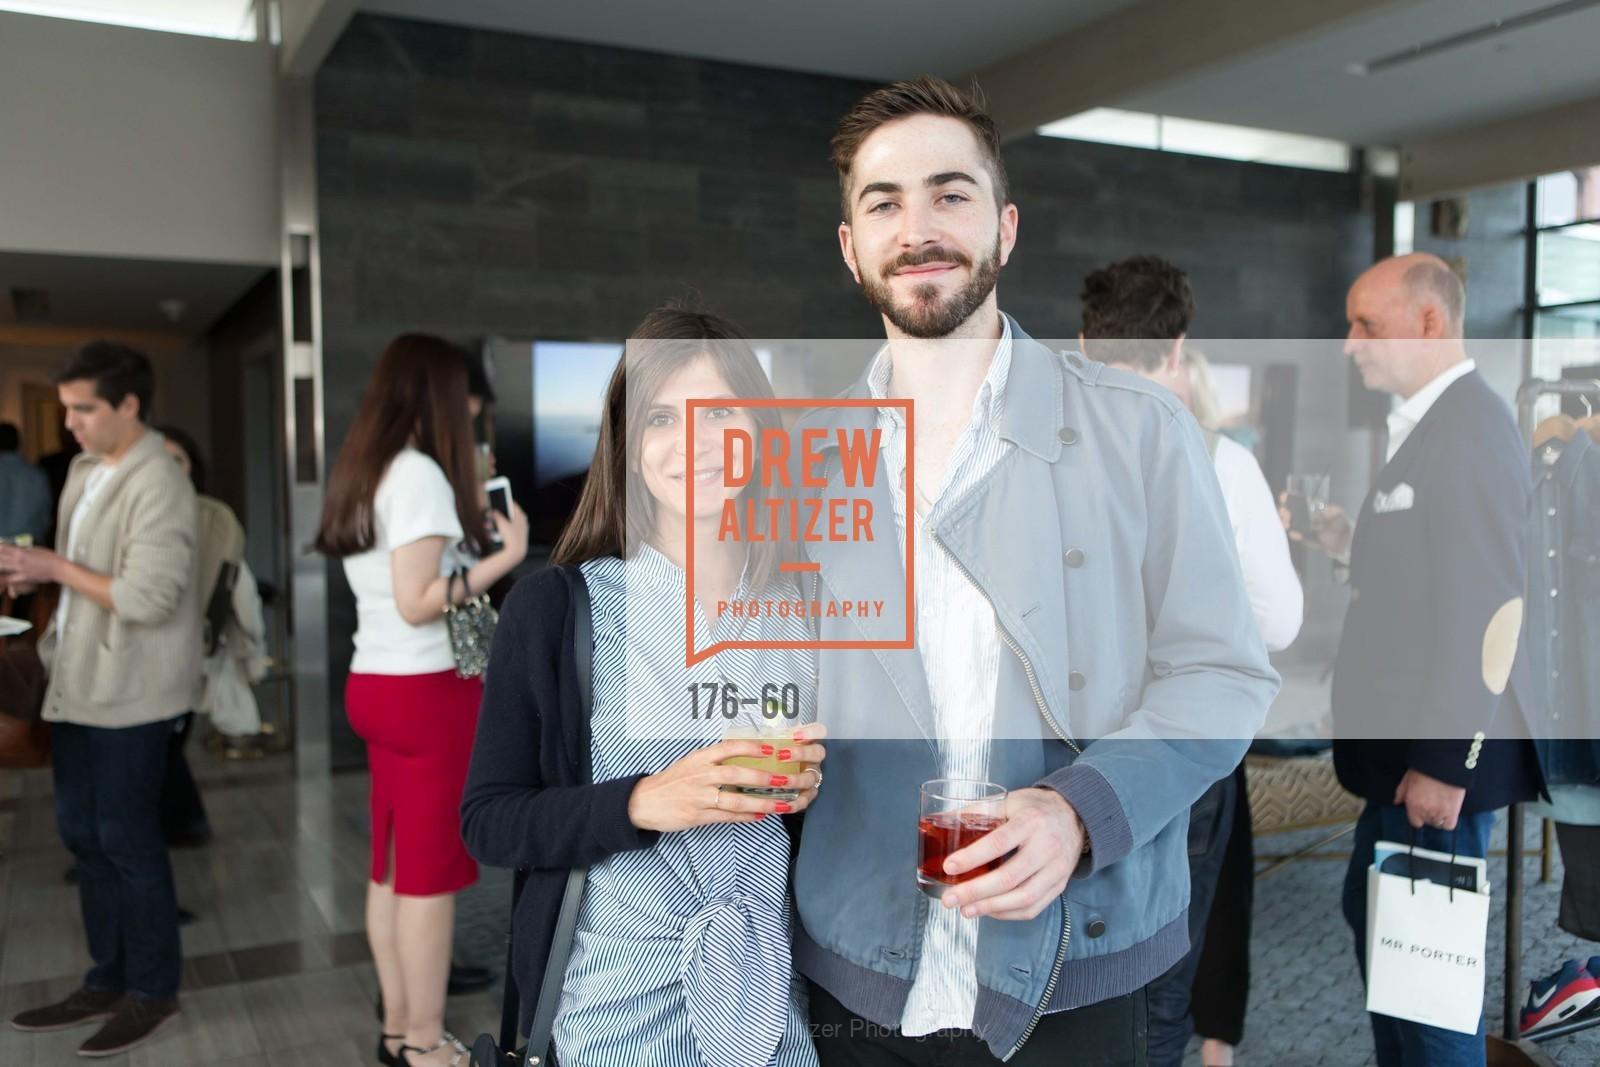 Shaunet Ravouna, Sam Howell, MR PORTER Celebrate The San Francisco Issue of The Journal, The Battery Rooftop - The Battery SF, April 23rd, 2015,Drew Altizer, Drew Altizer Photography, full-service agency, private events, San Francisco photographer, photographer california